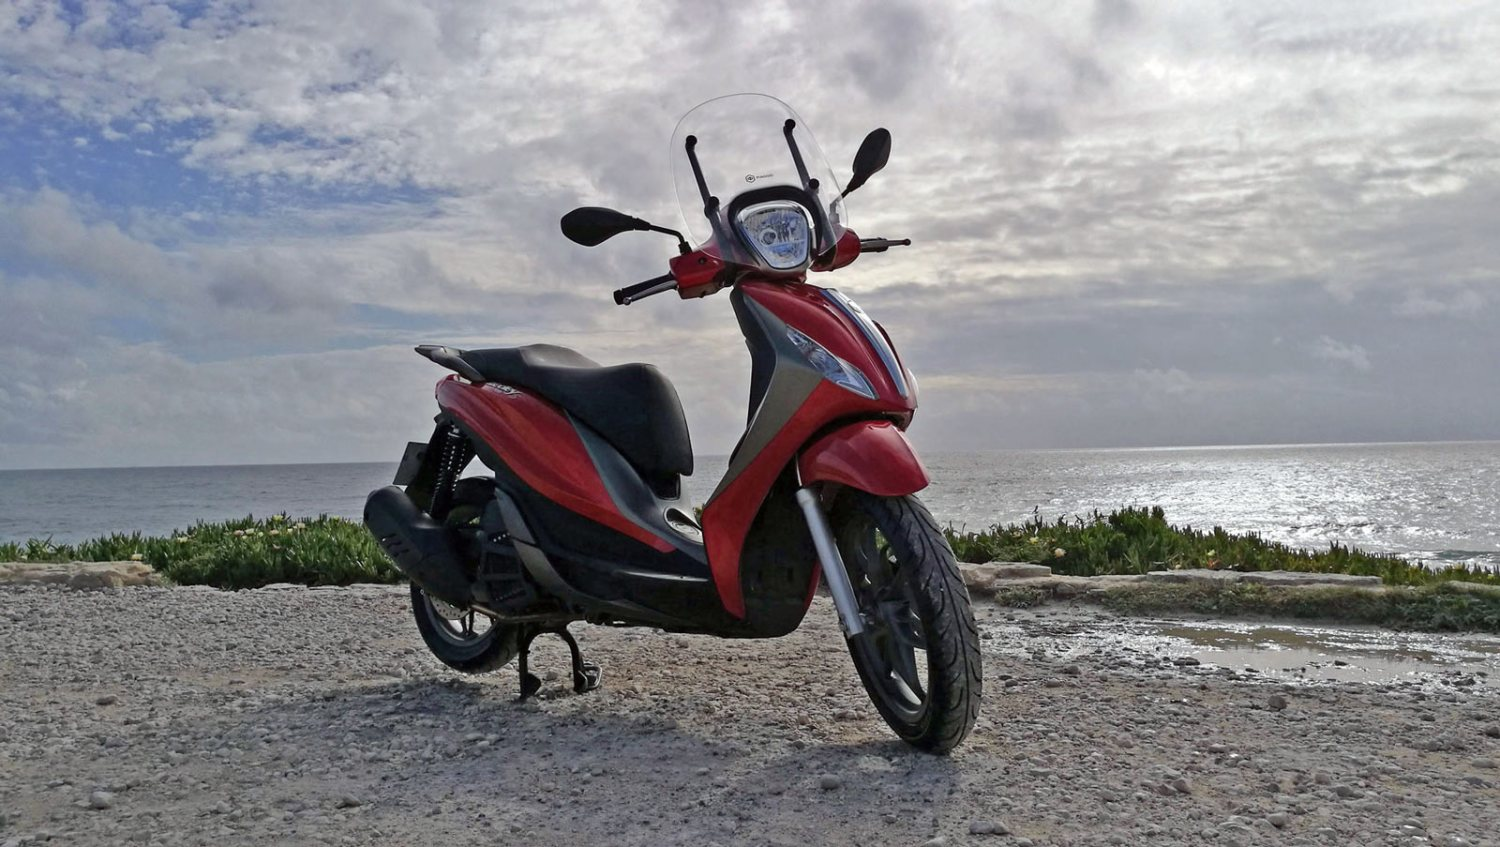 Scooter Piaggio Medley S 125